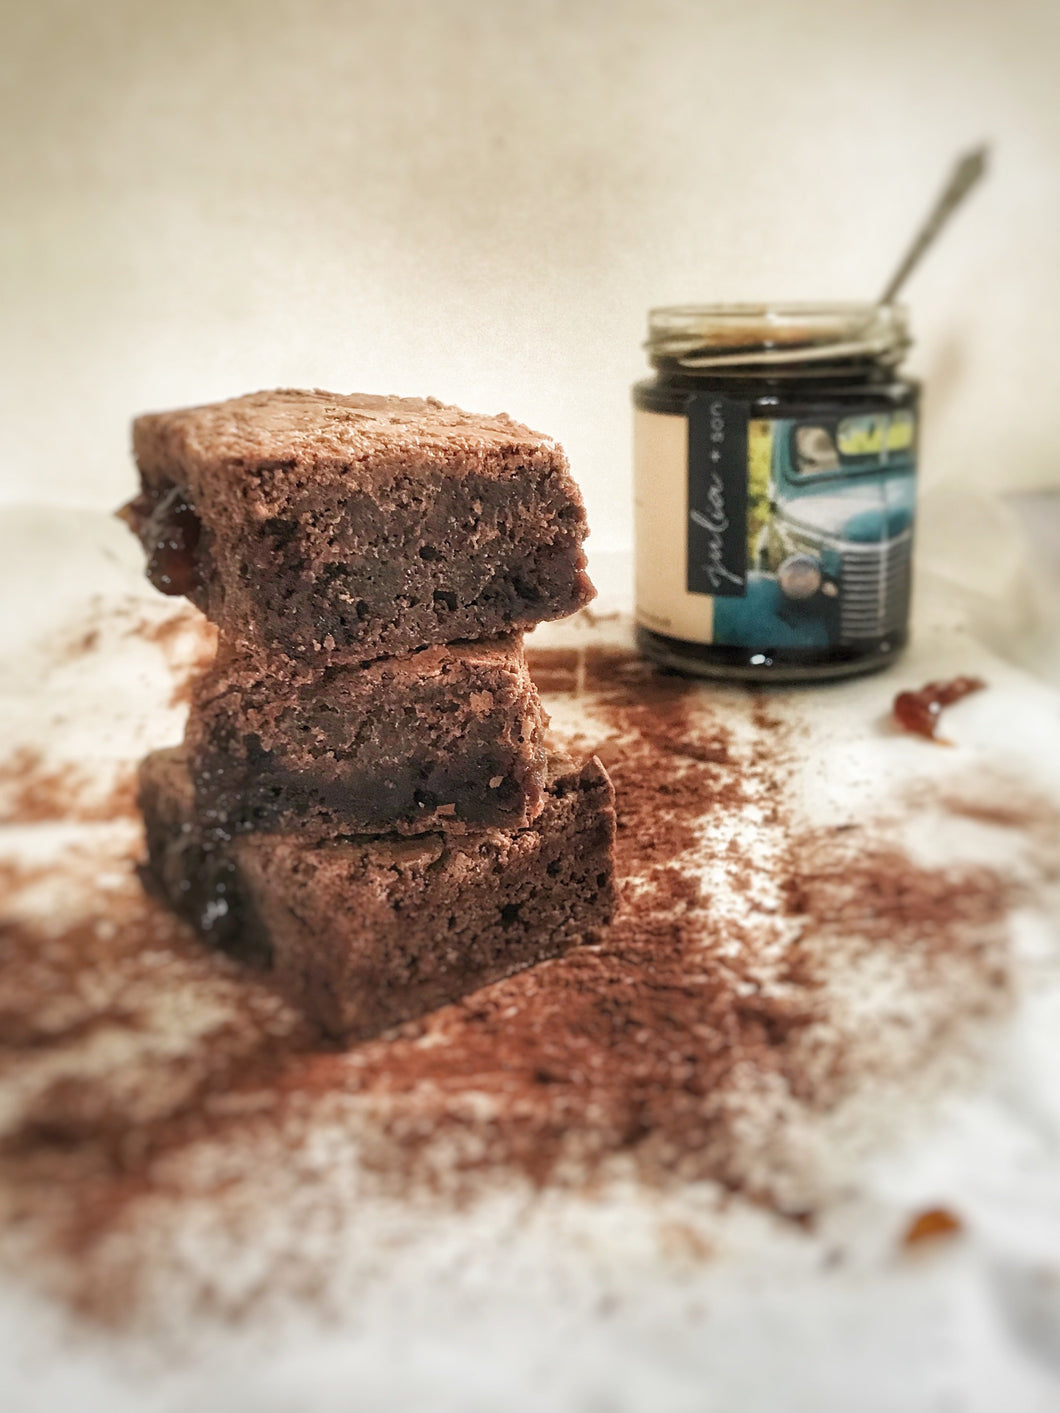 Award Winning Gluten, Wheat + Dairy Free Seville Marmalade Brownies - Julia + son